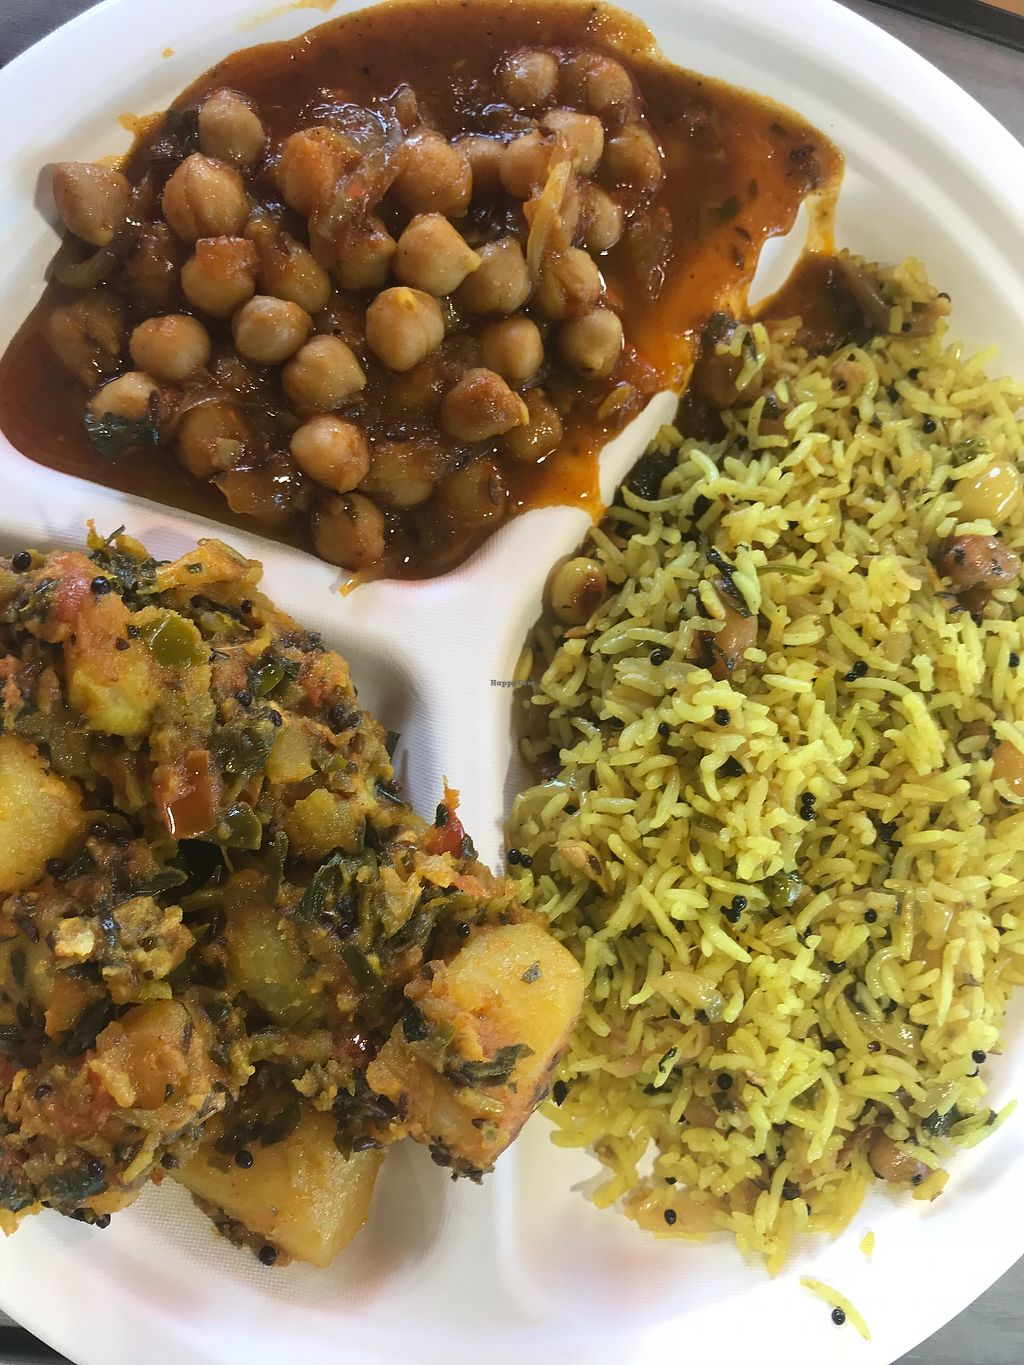 """Photo of Namaste Spiceland  by <a href=""""/members/profile/animalattorney"""">animalattorney</a> <br/>Vegan Options at Spiceland Lunch =) <br/> February 13, 2018  - <a href='/contact/abuse/image/107206/358814'>Report</a>"""